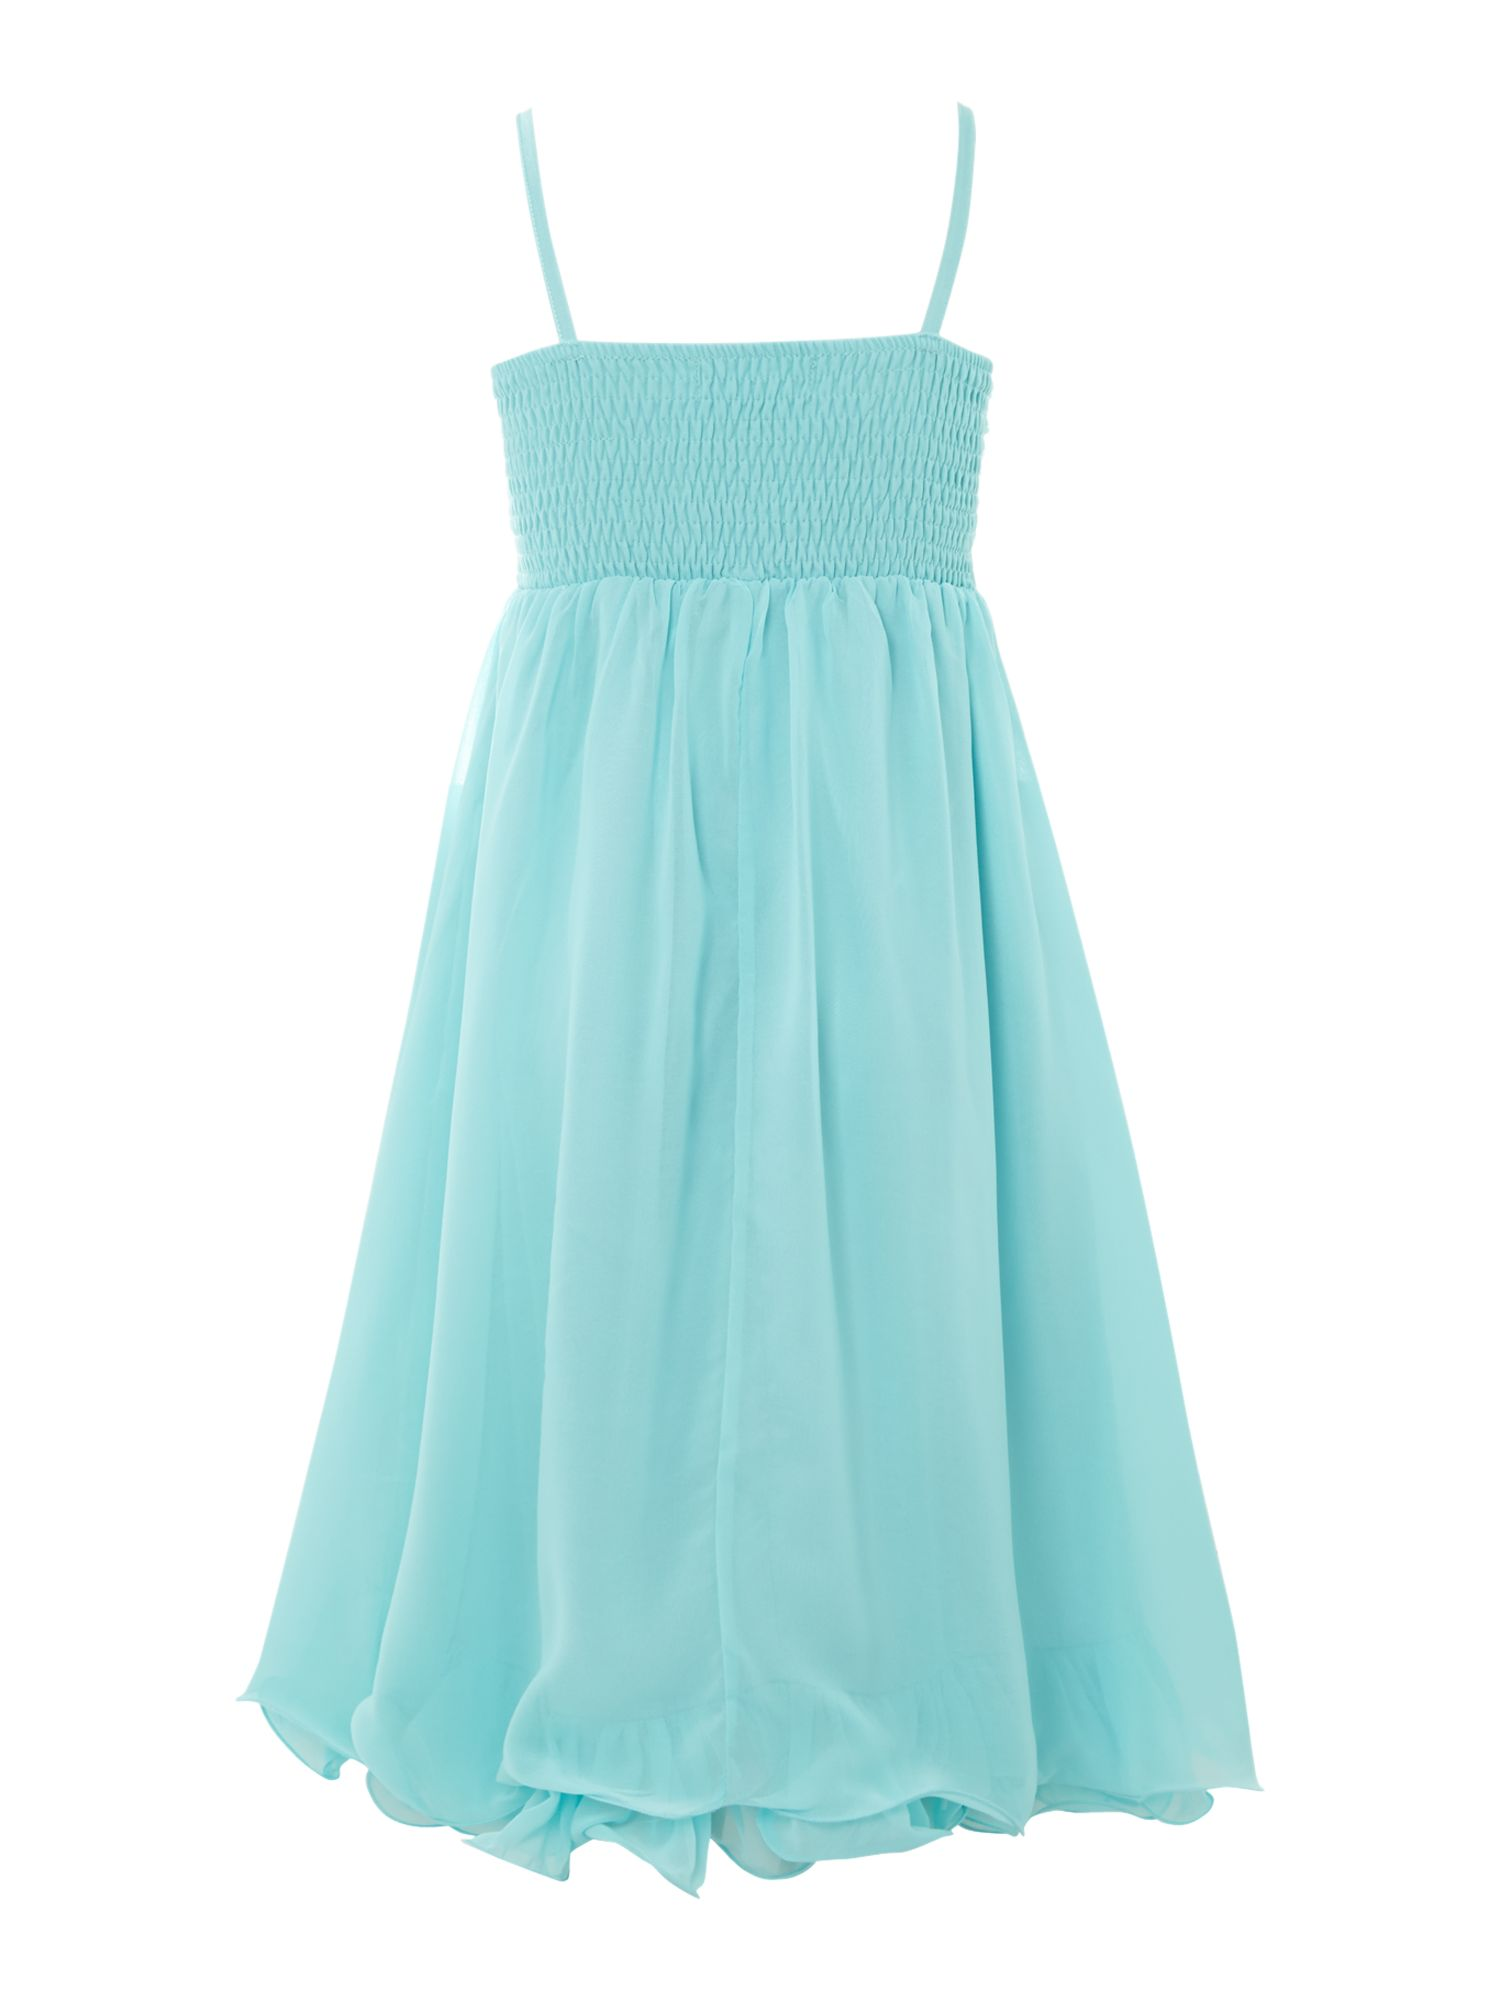 Girls rouched hem dress